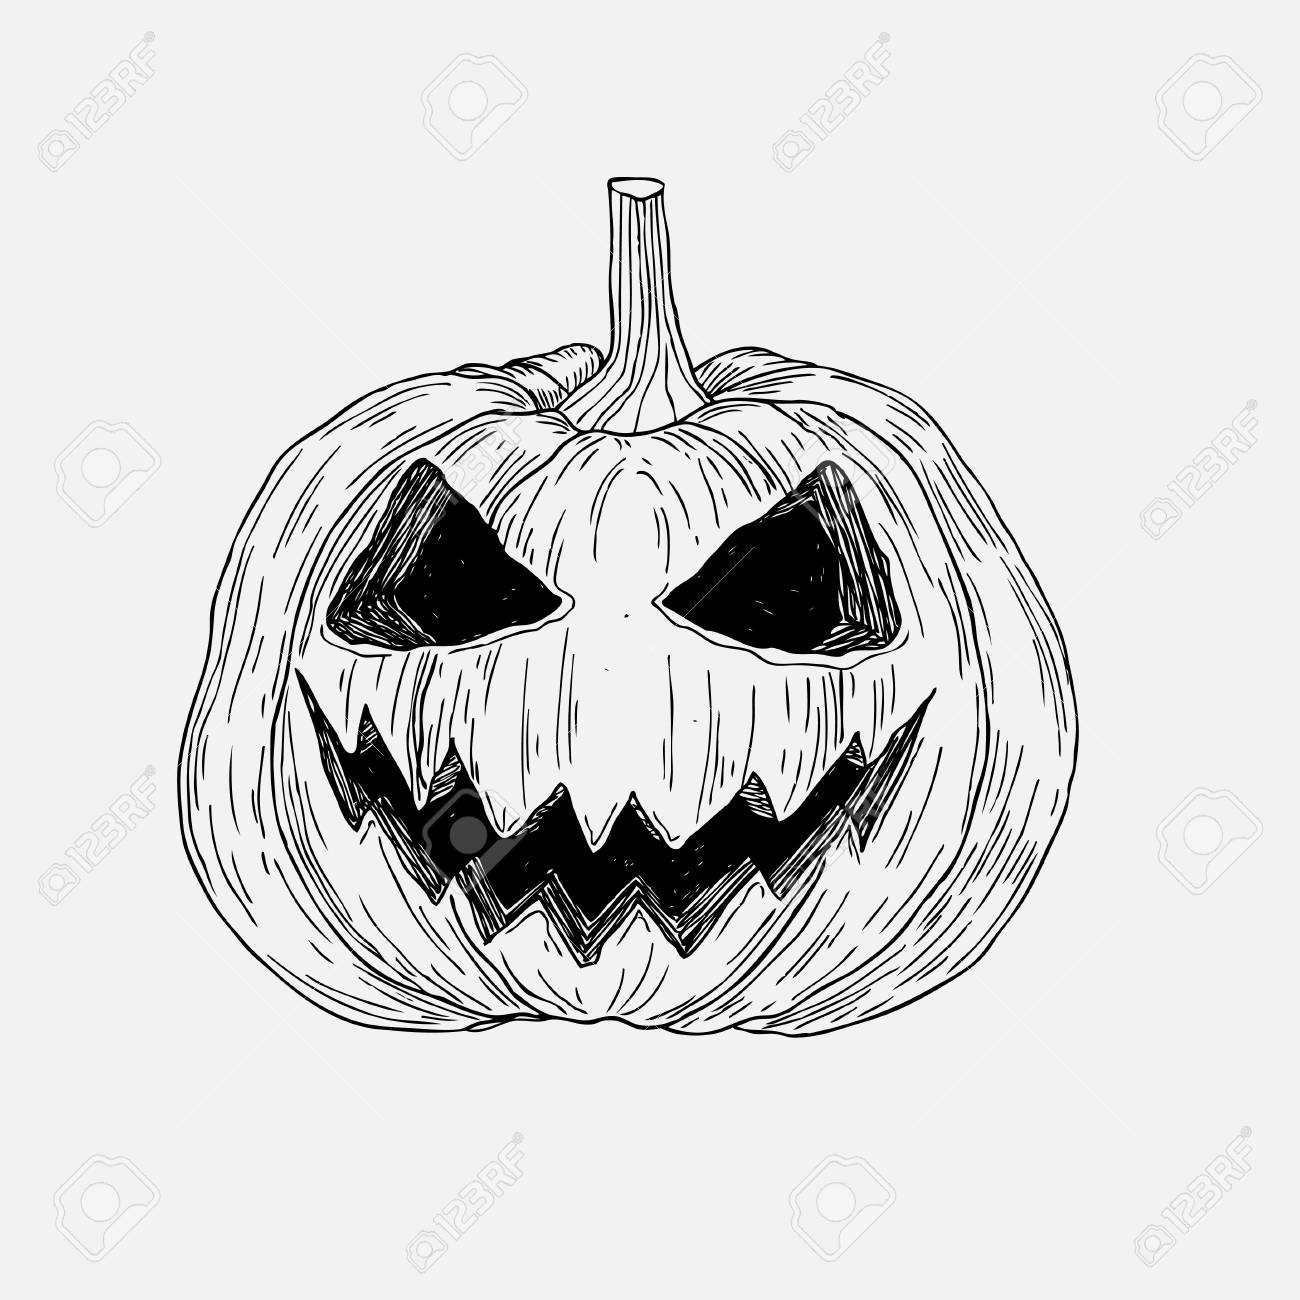 a87537613 Vector - Vector hand drawn Halloween pumpkin with evil scary smile. Graphic  sketch for posters, tattoo, clothes, t-shirt design, pins, patches, badges,  ...